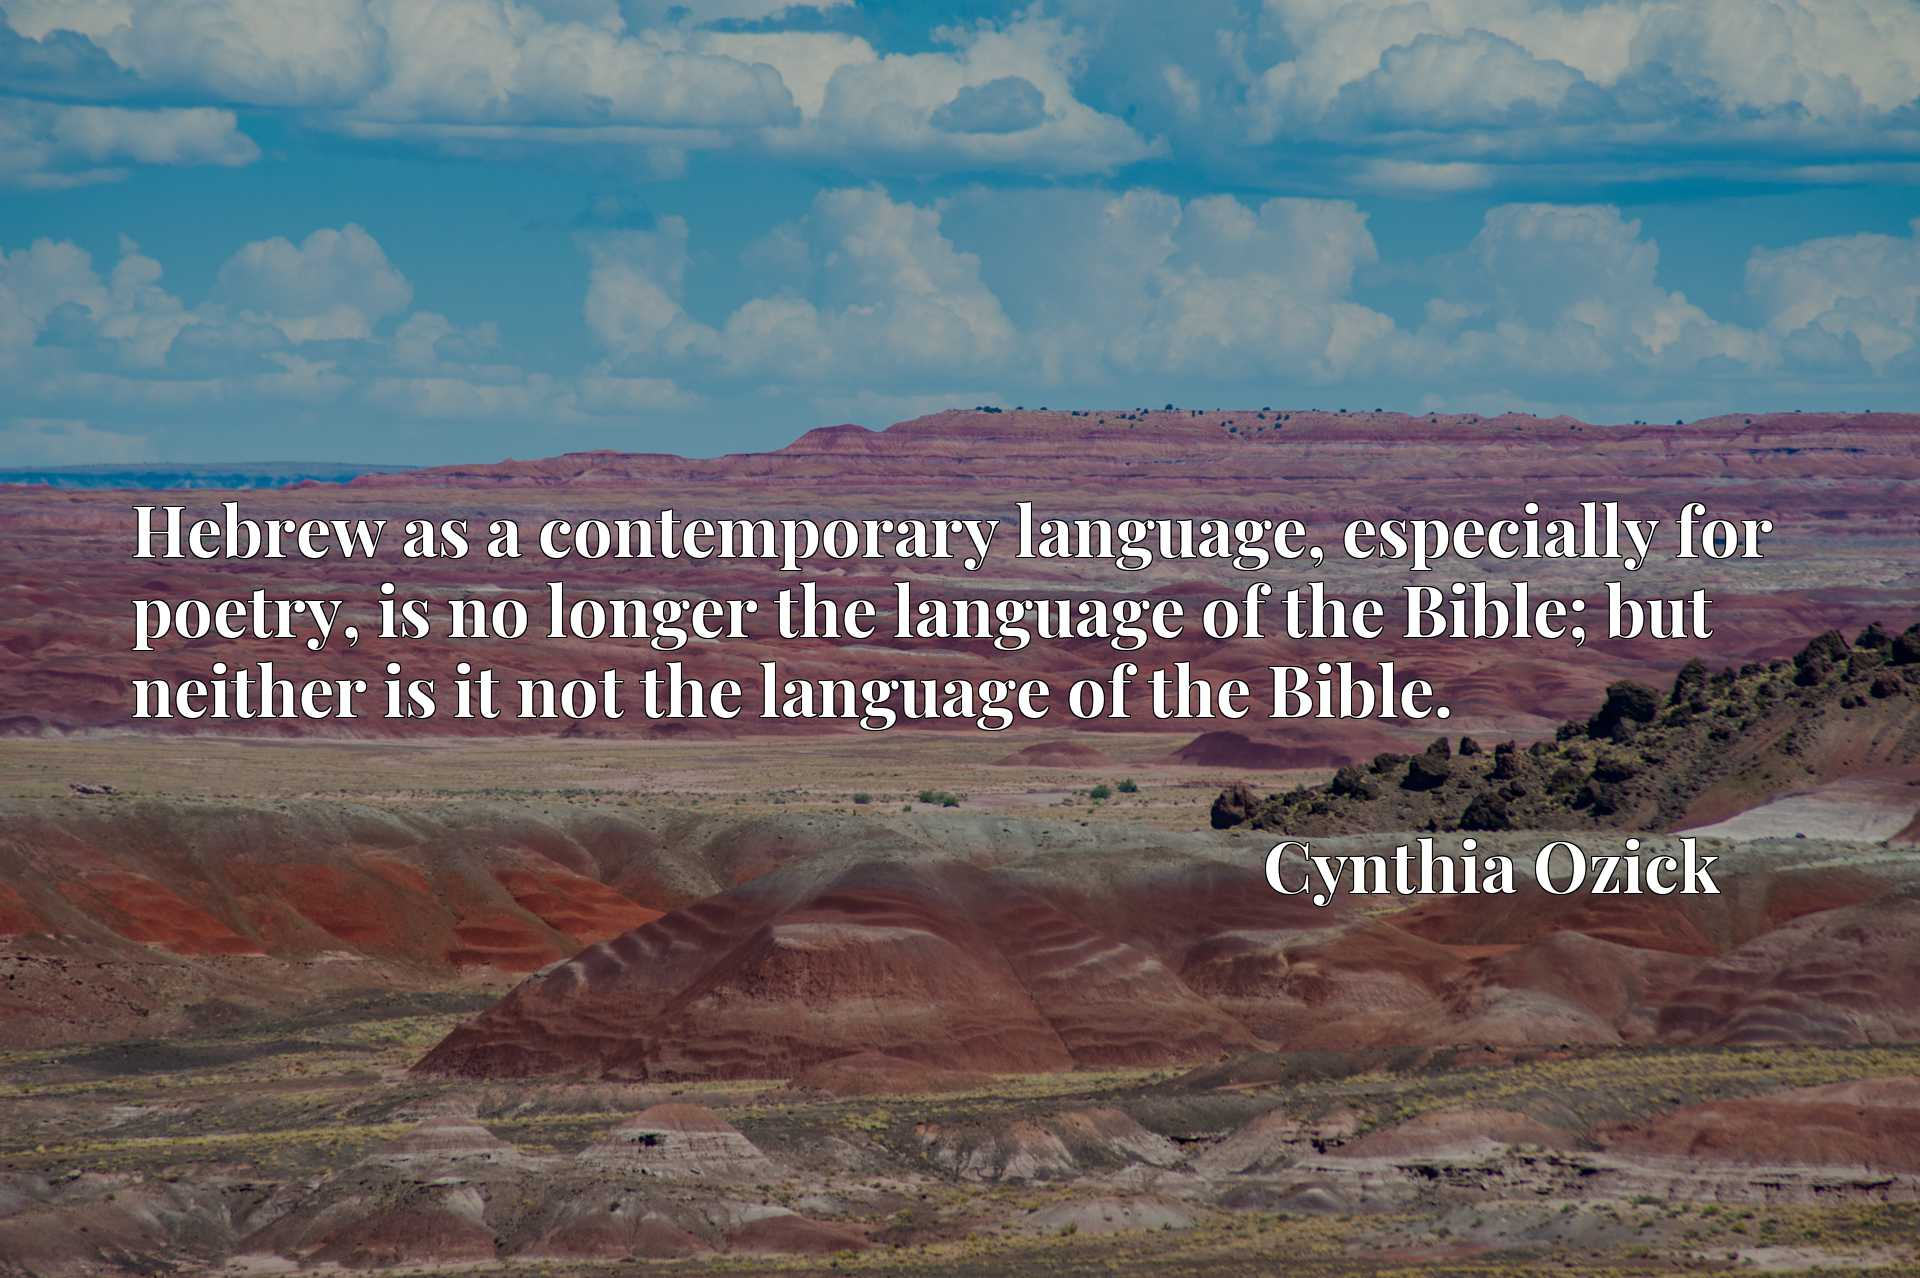 Hebrew as a contemporary language, especially for poetry, is no longer the language of the Bible; but neither is it not the language of the Bible.